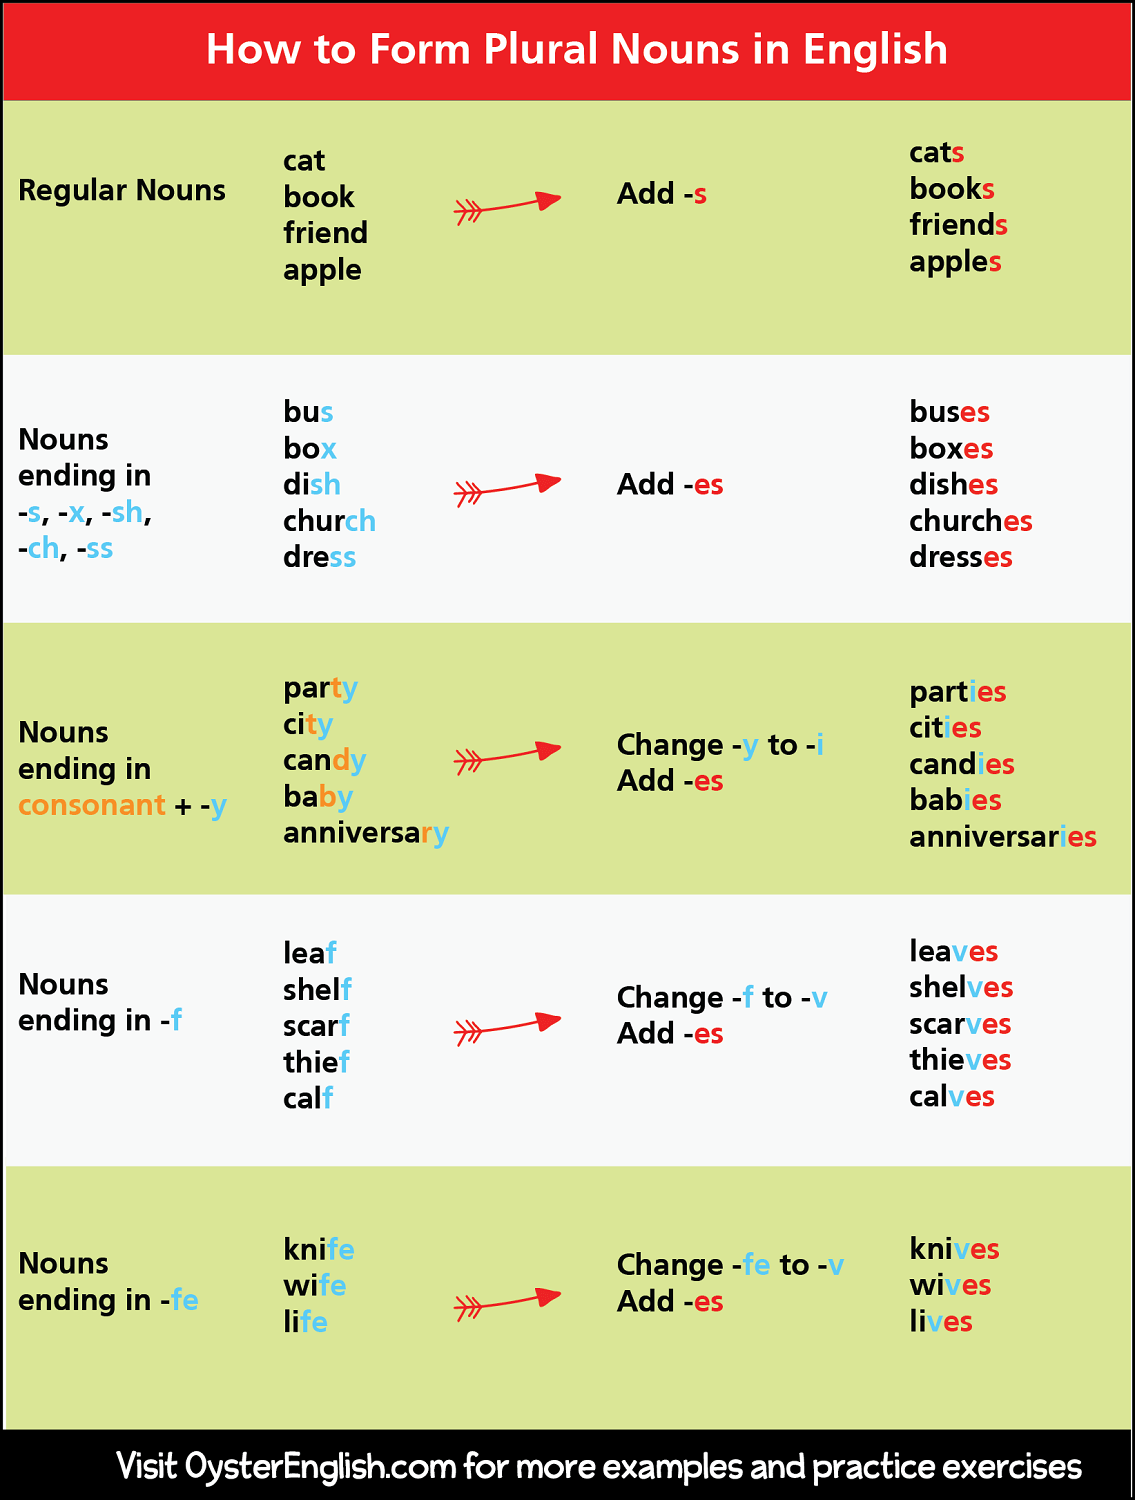 A detailed chart showing how to form plural nouns.